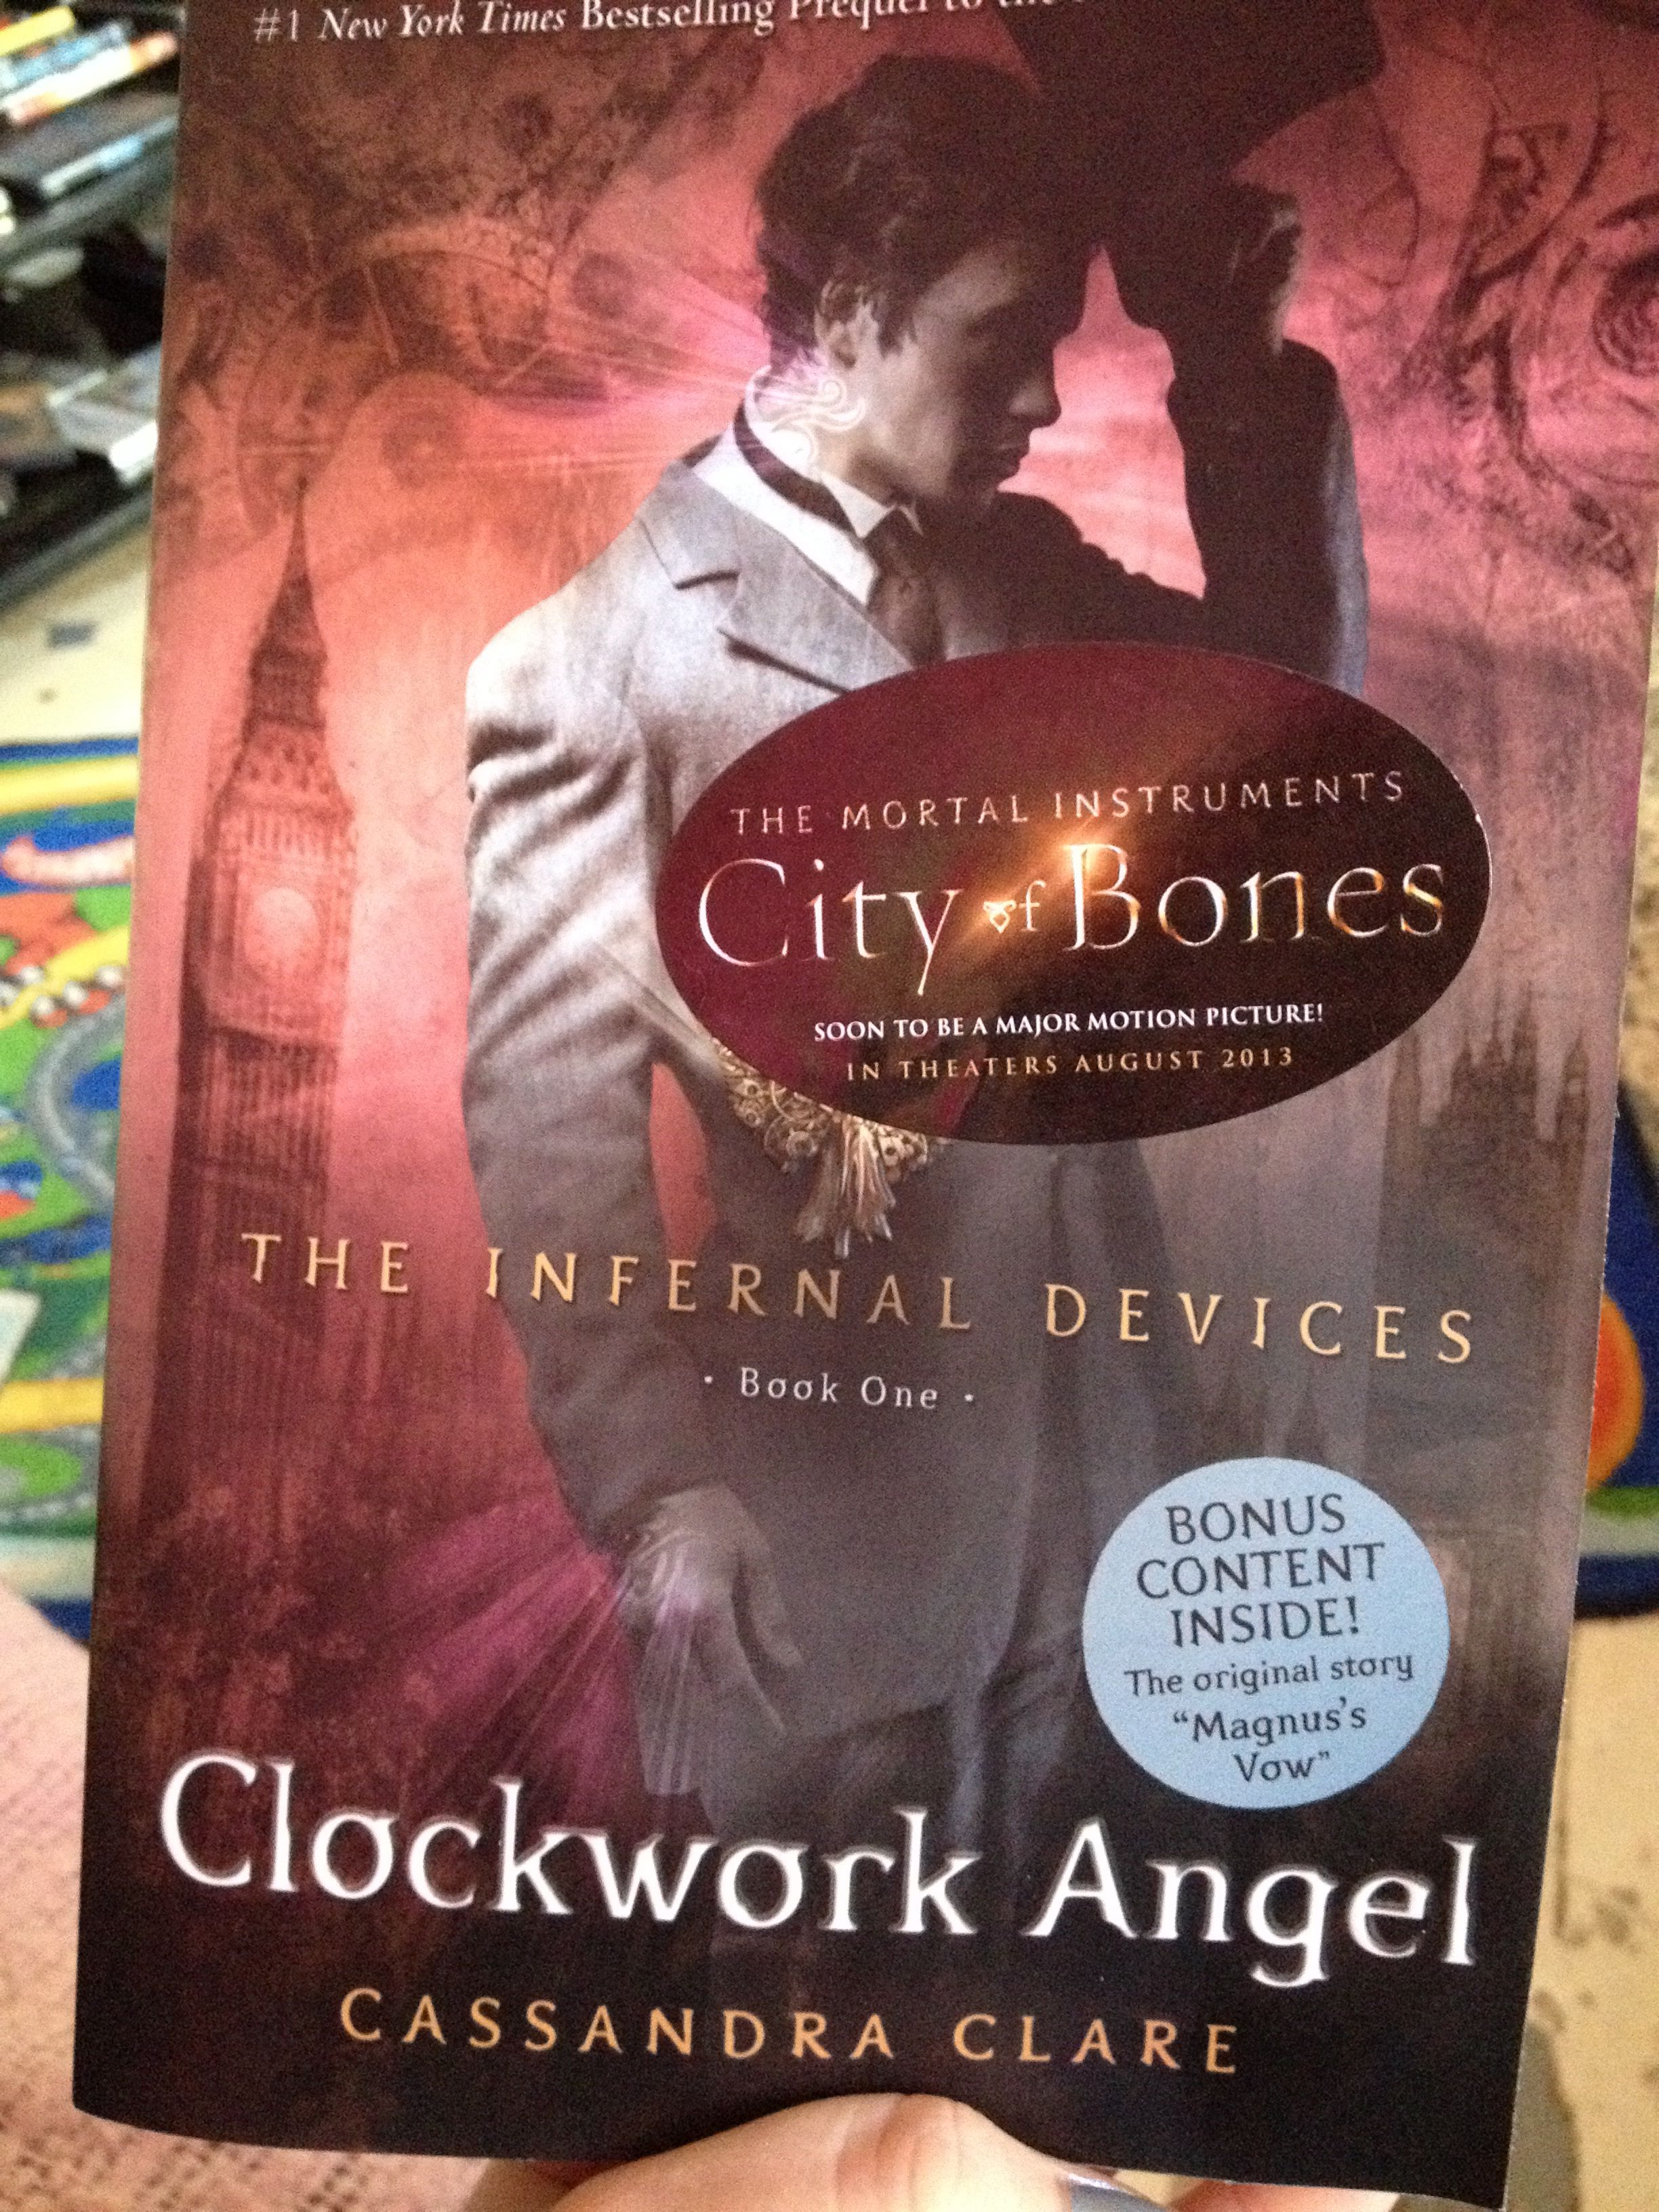 The infernal devices  Clockwork angel by Cassandra Clare I really like this book because of the action and the love of characters in book. I like the time period it was written in and the place of London.